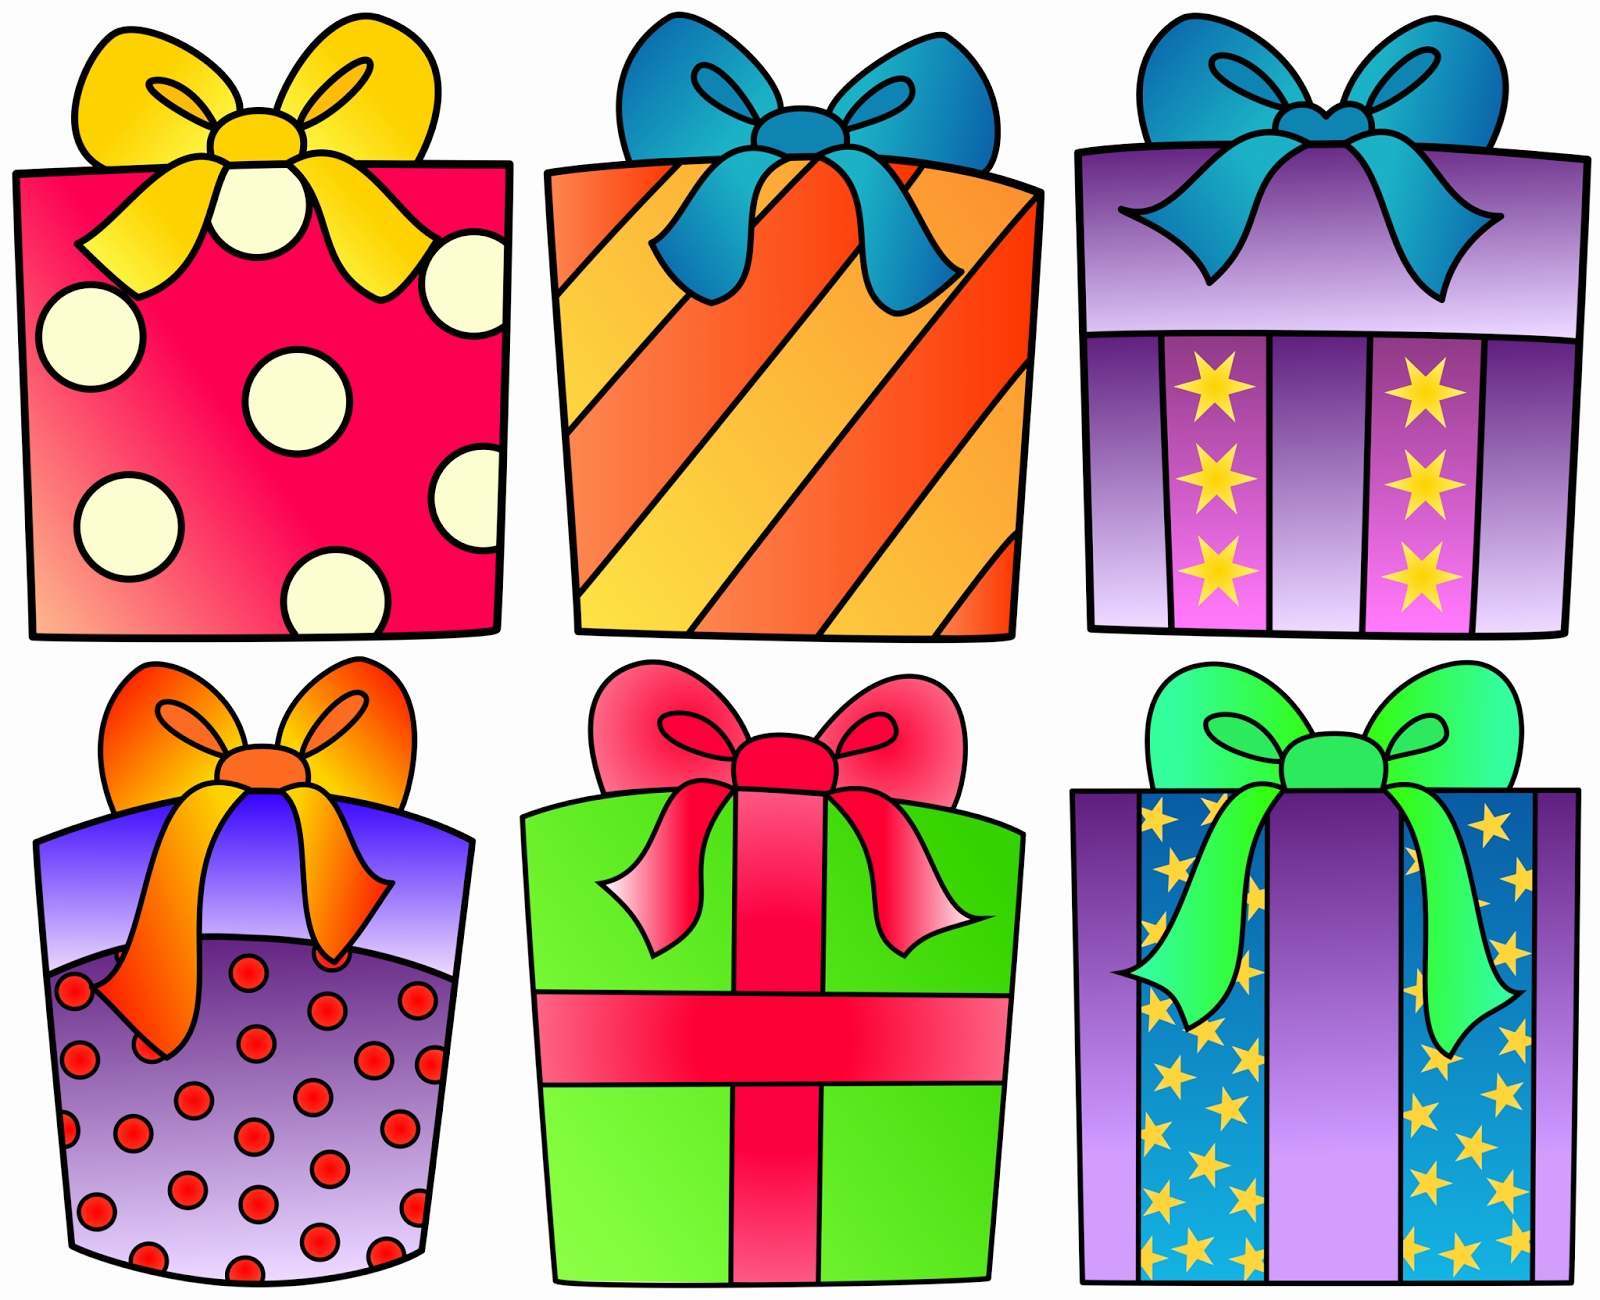 free clipart birthday presents ; a3-birthday-cards-lovely-birthday-present-clipart-for-your-project-or-classroom-free-png-of-a3-birthday-cards